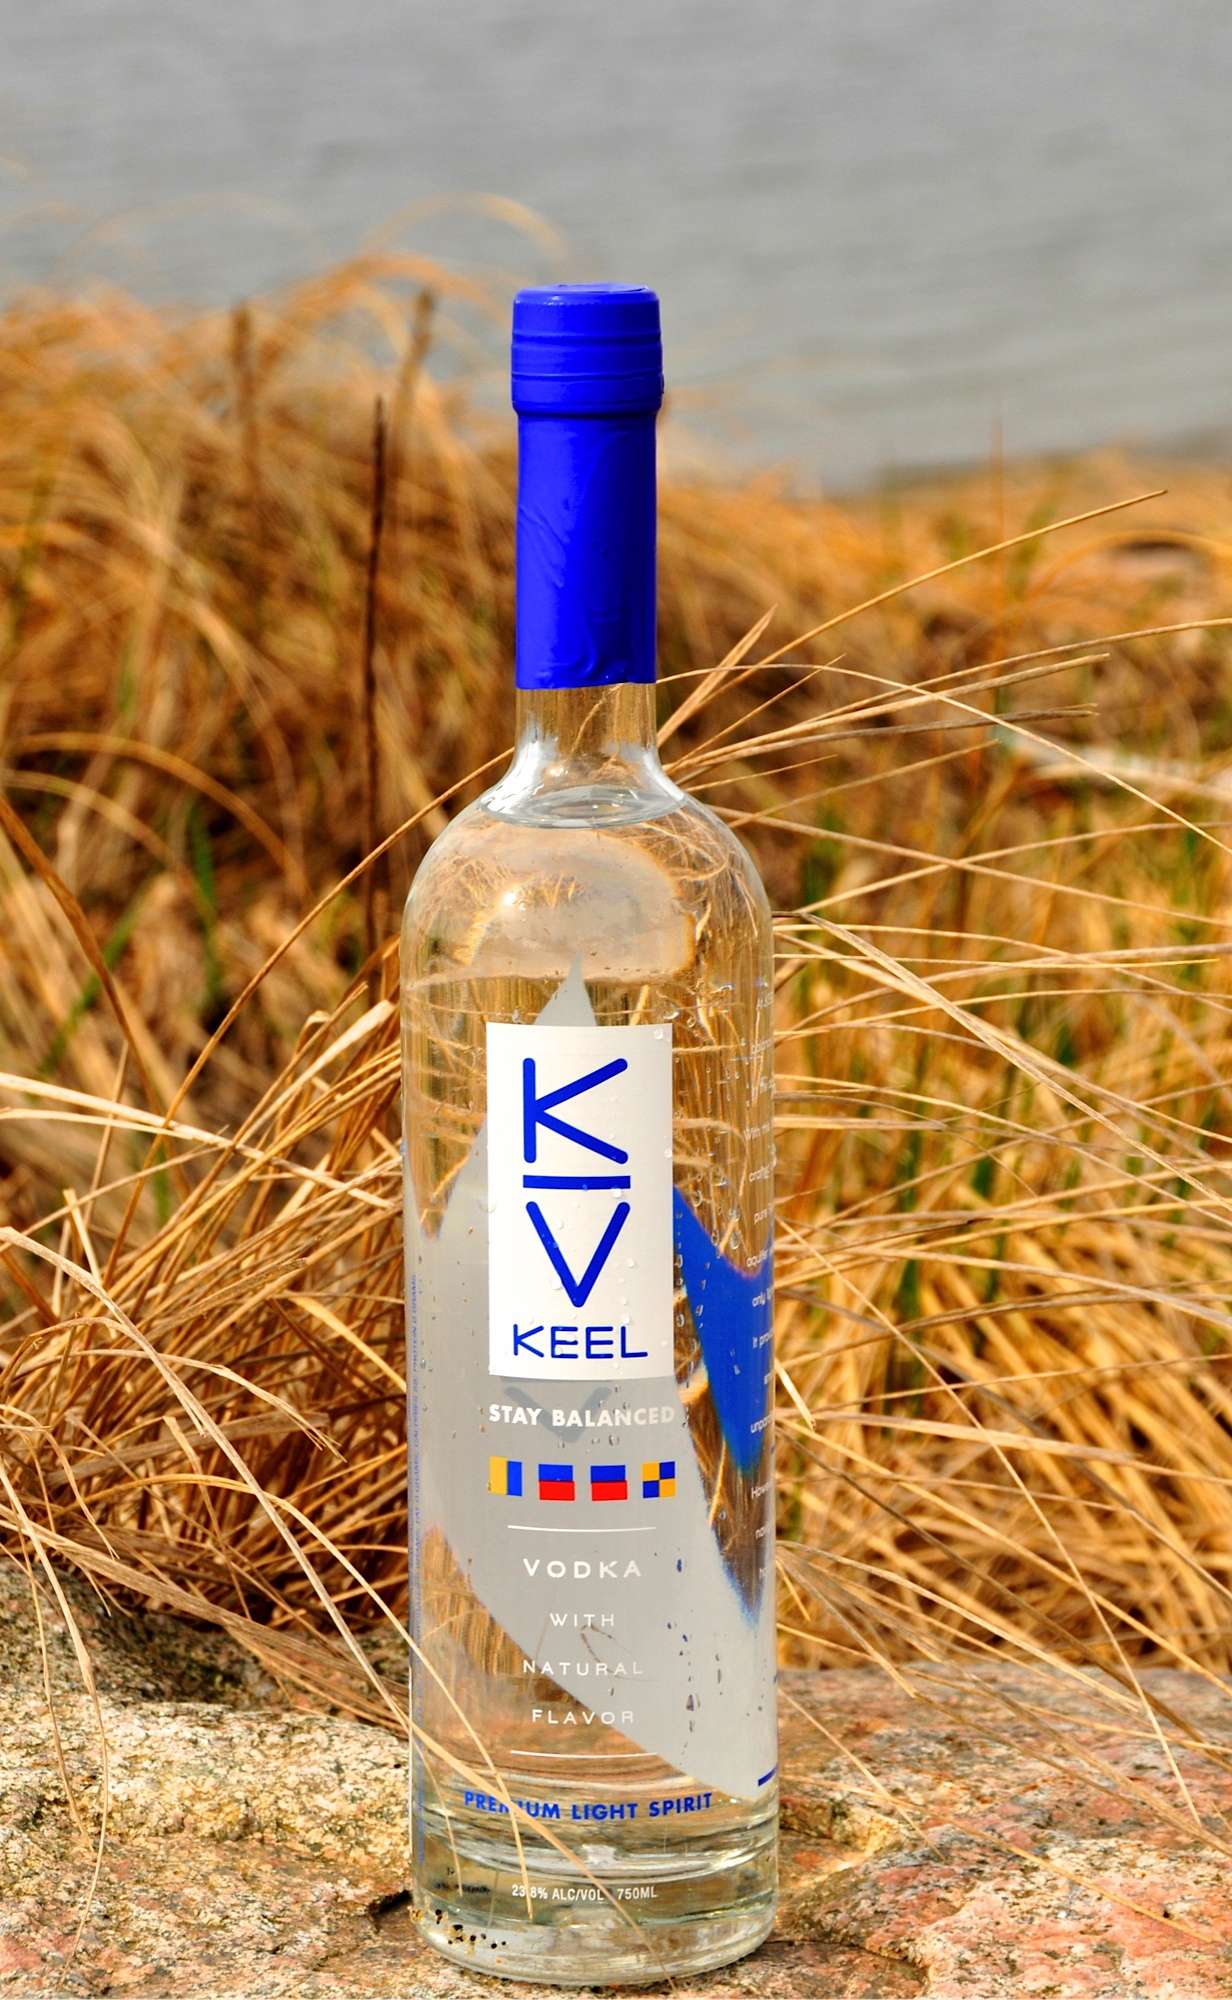 KEEL VODKA SEEKS SIGNATURE DRINK IN RHODE ISLAND CONTEST